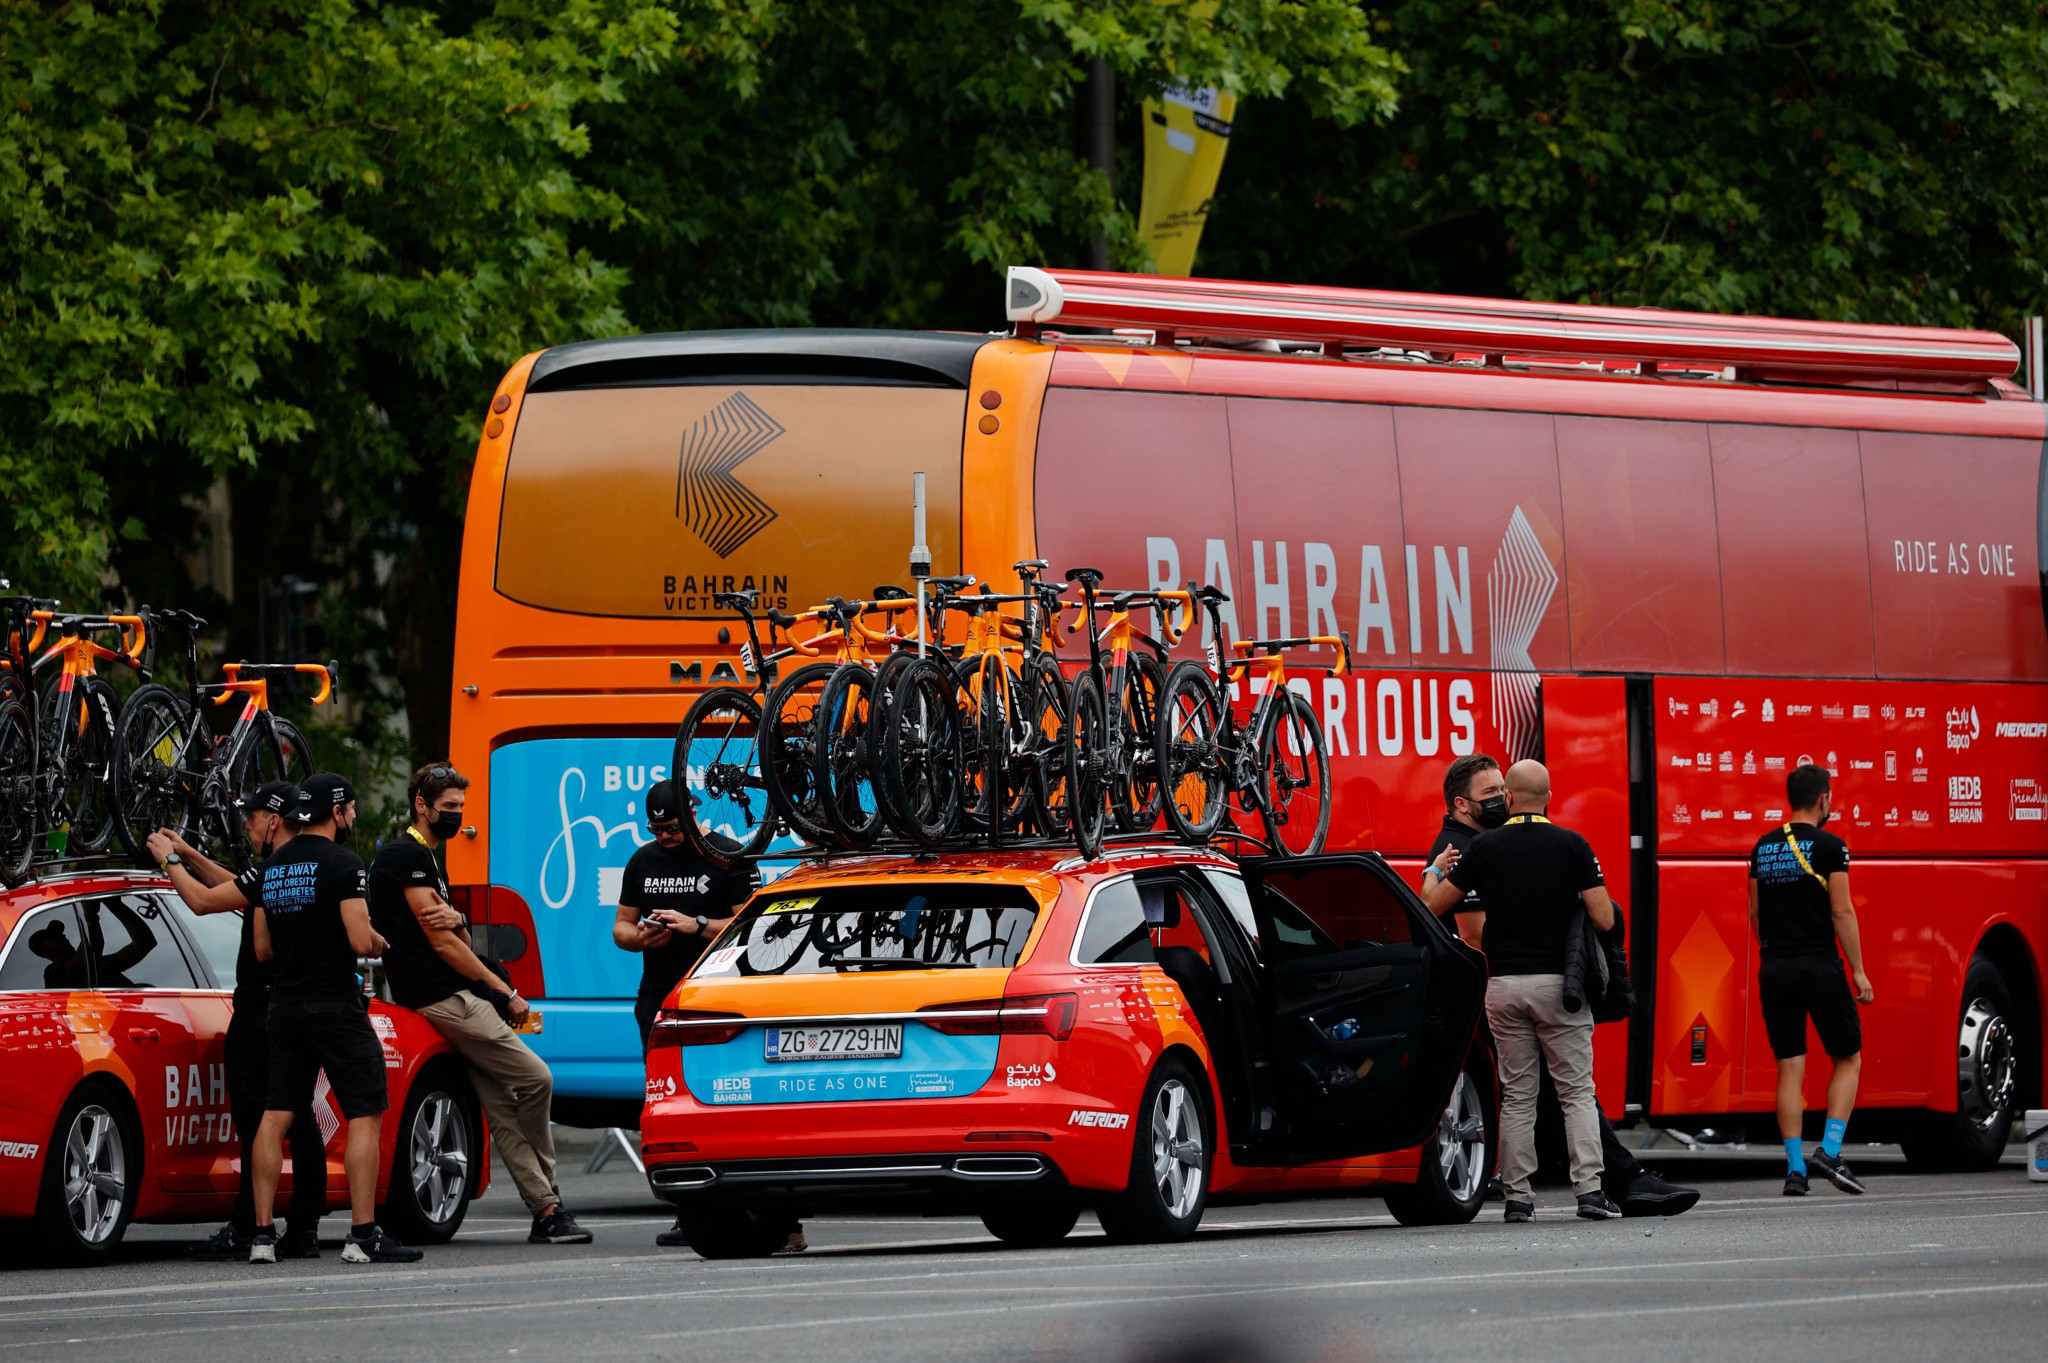 Bahrain Victorious hotel searched by police at Tour de France in doping investigation